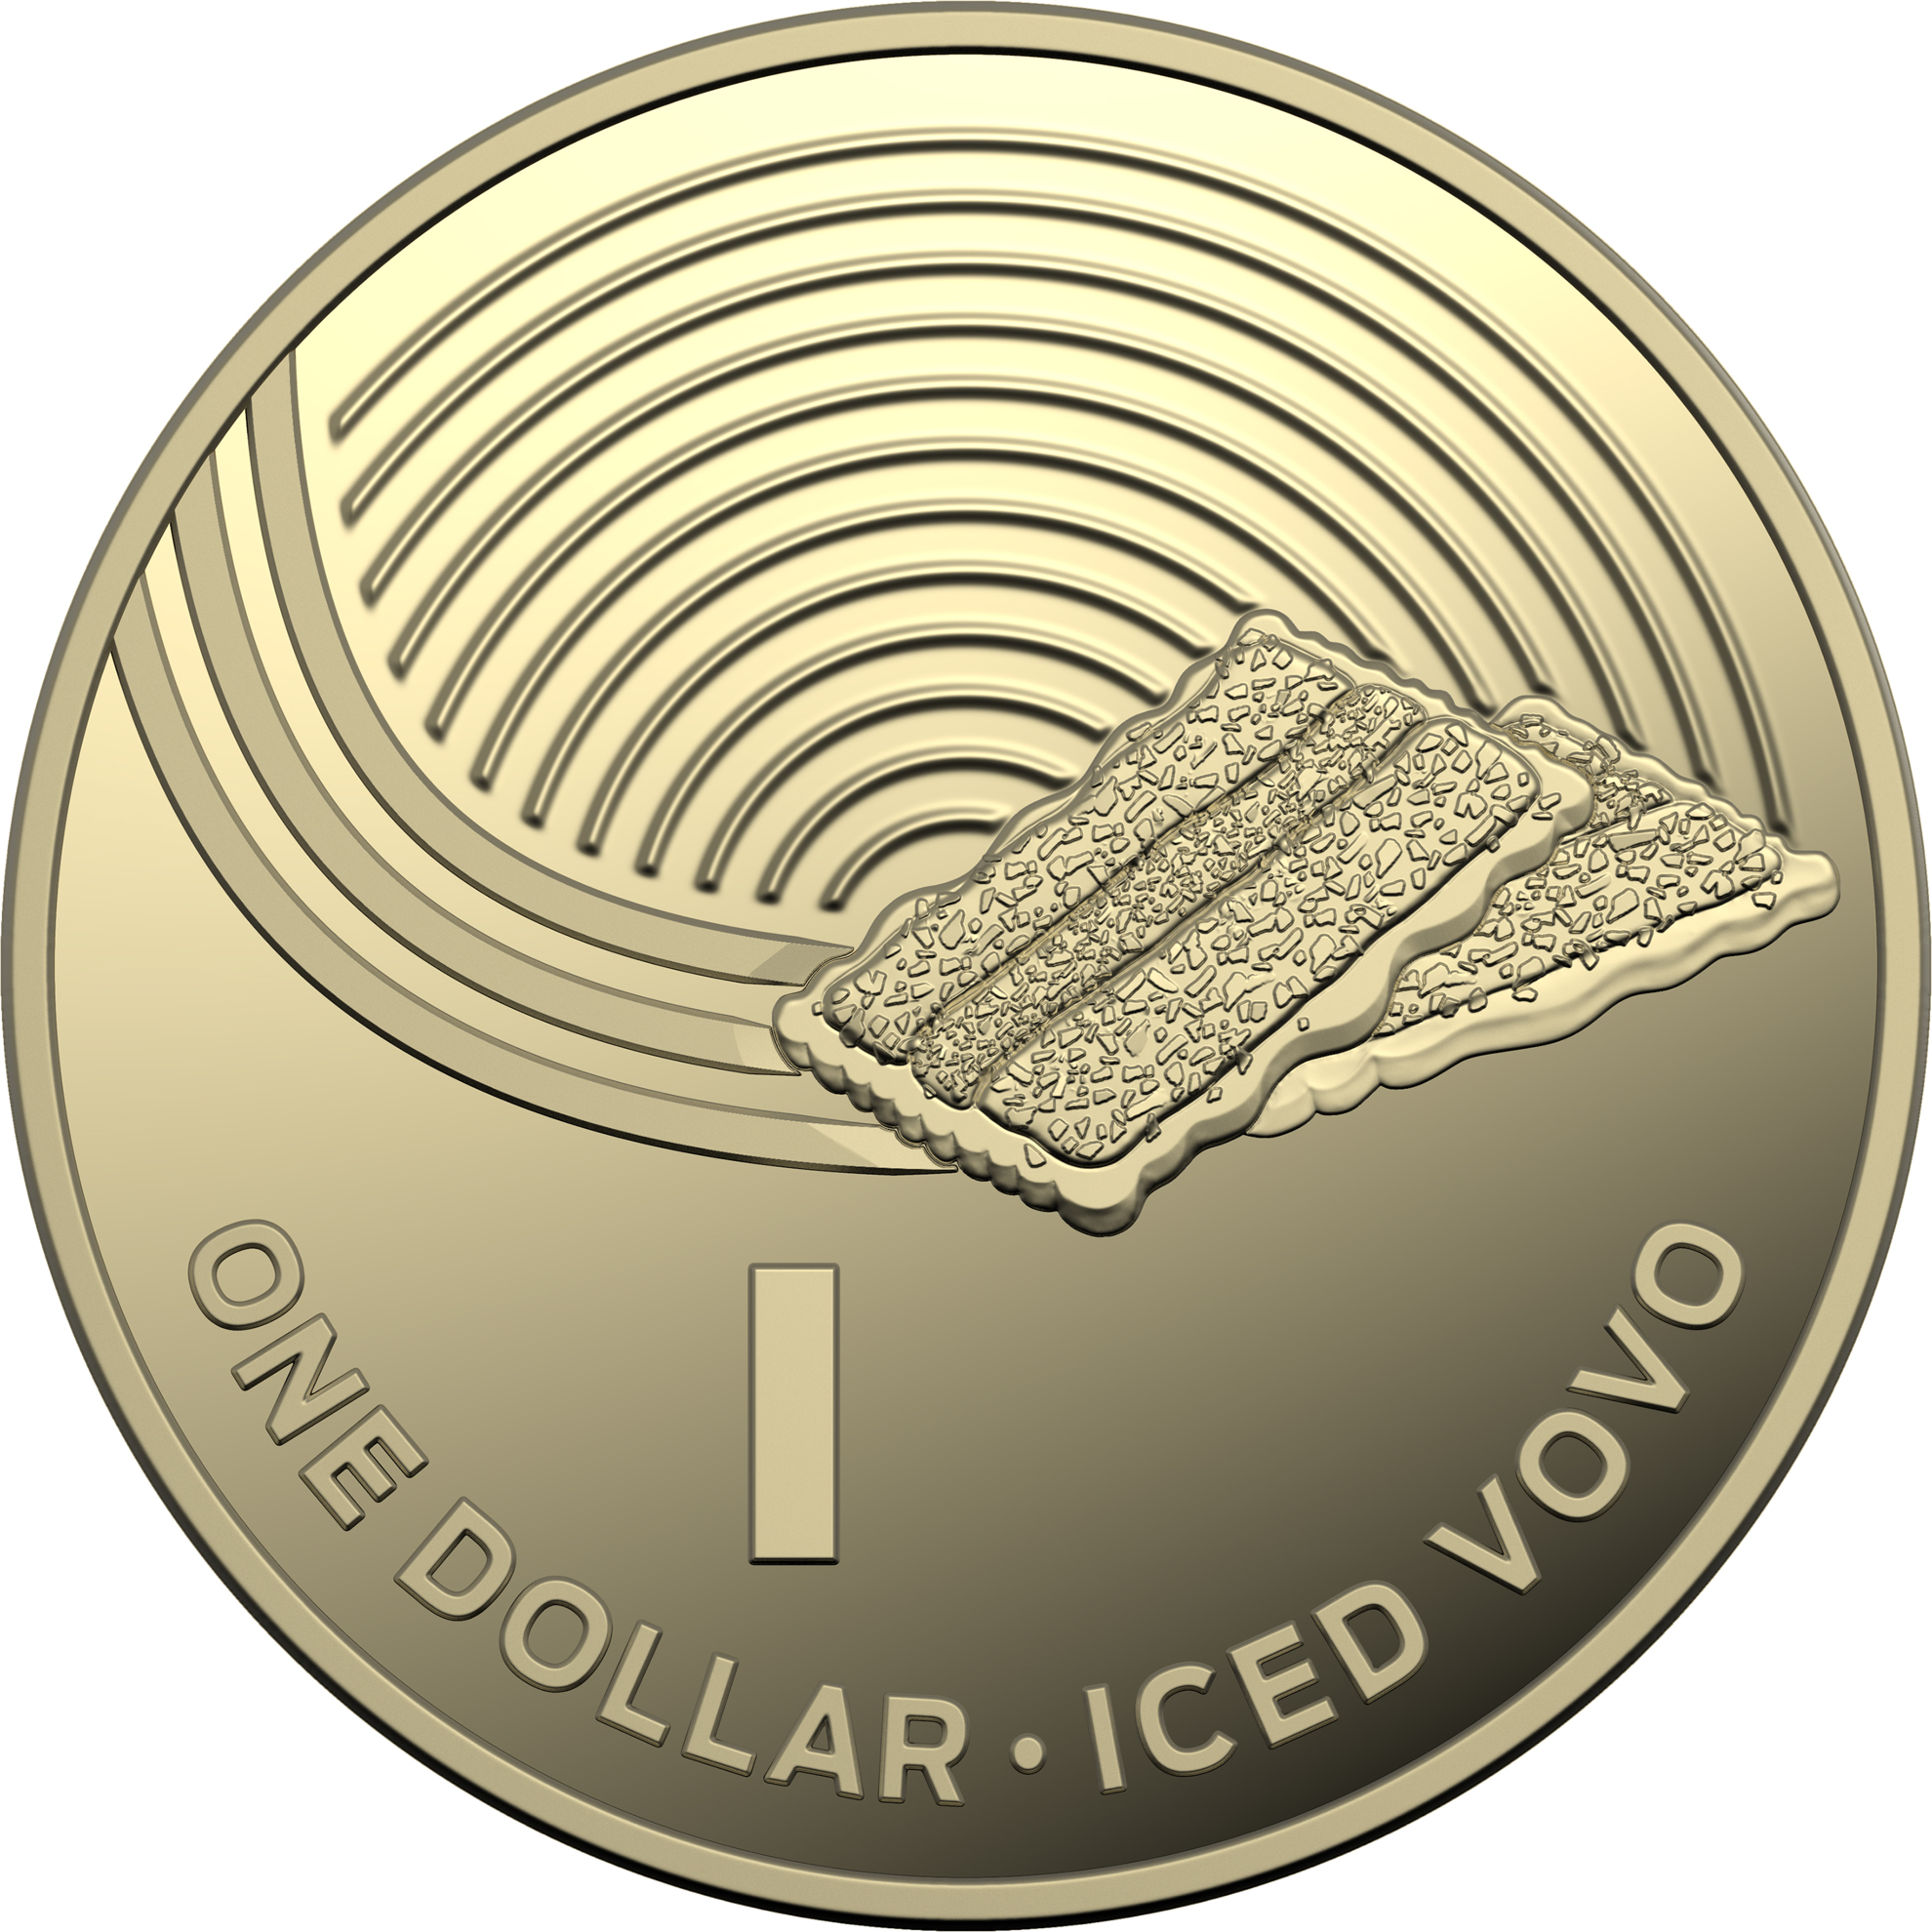 One Dollar 2019 I - Iced Vovo: Photo 2019 $1 Proof Coin Collection - Iced Vovo